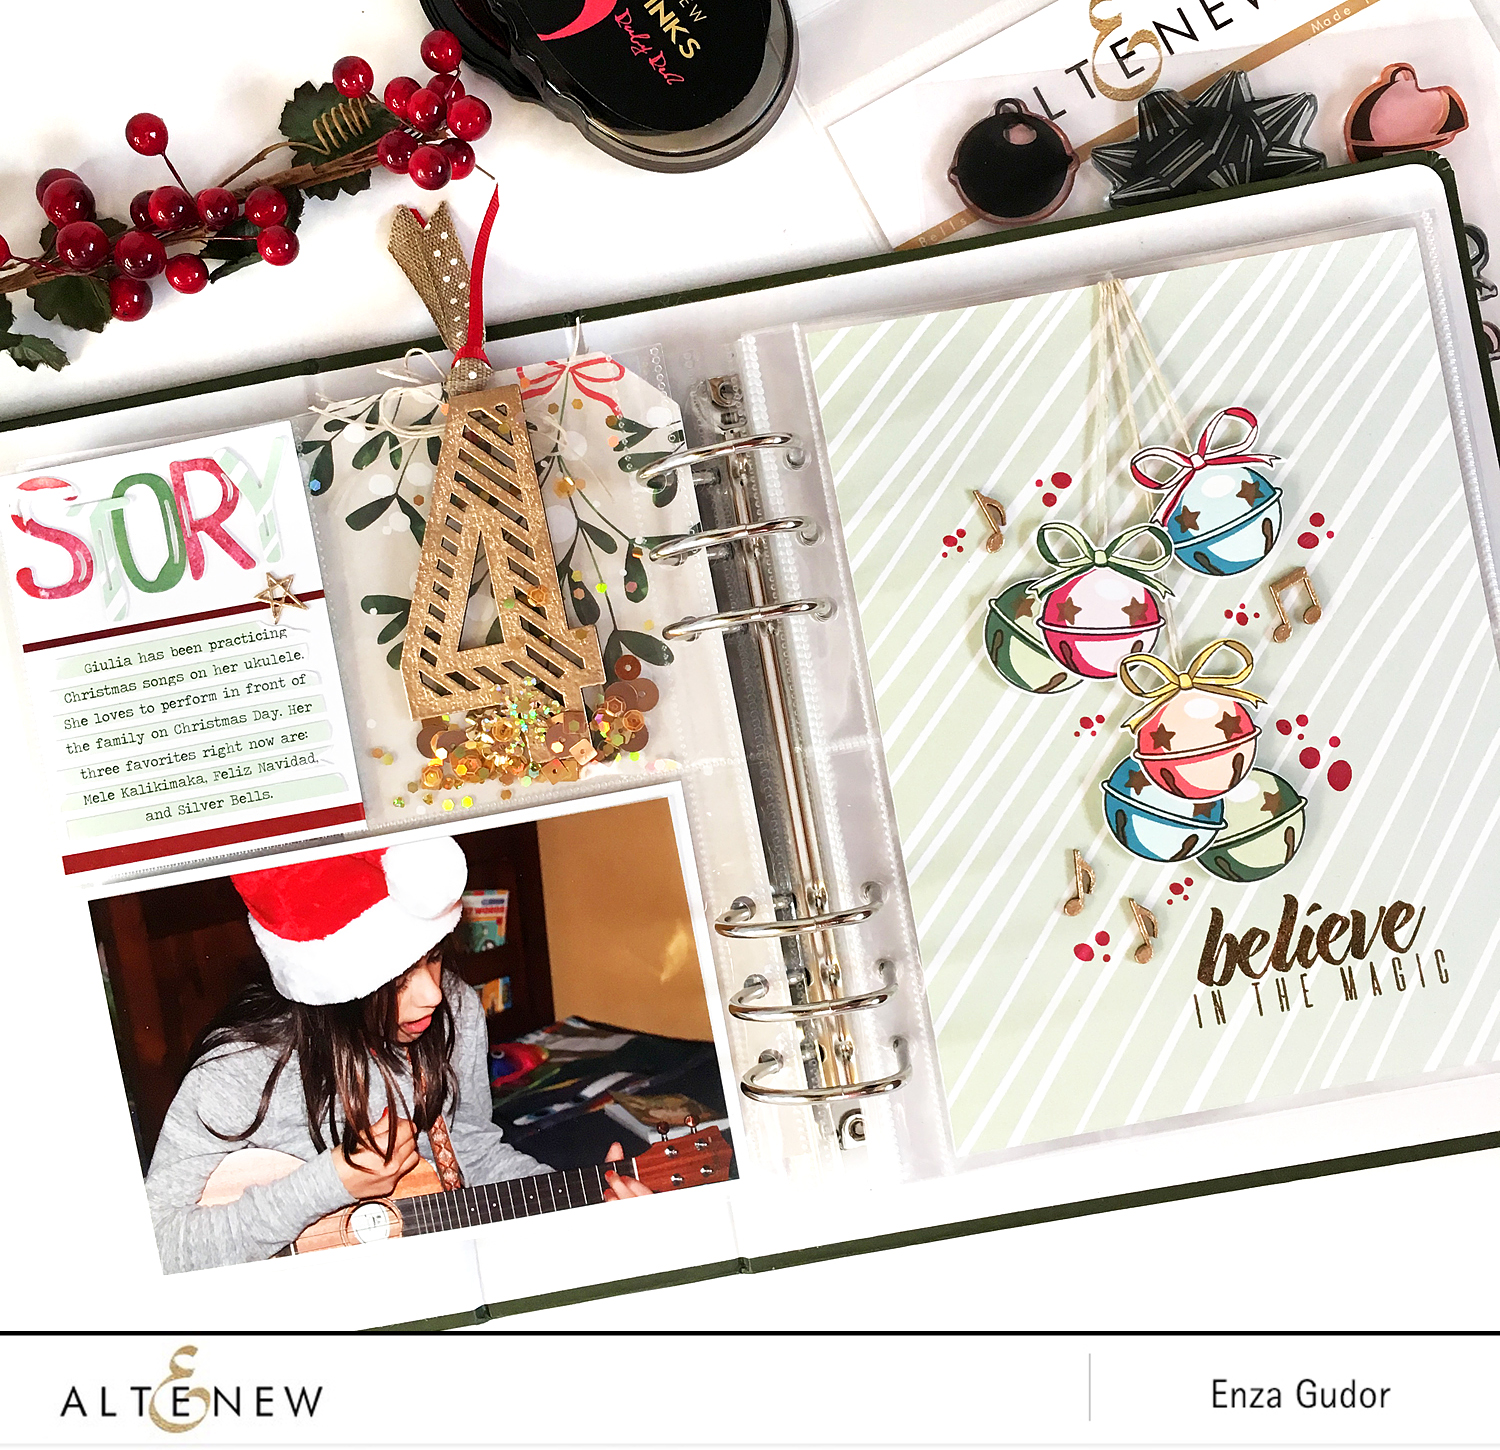 December memories with Altenew @altenew @enzamg #stamping #december #bellsandbows #brushalphadieset